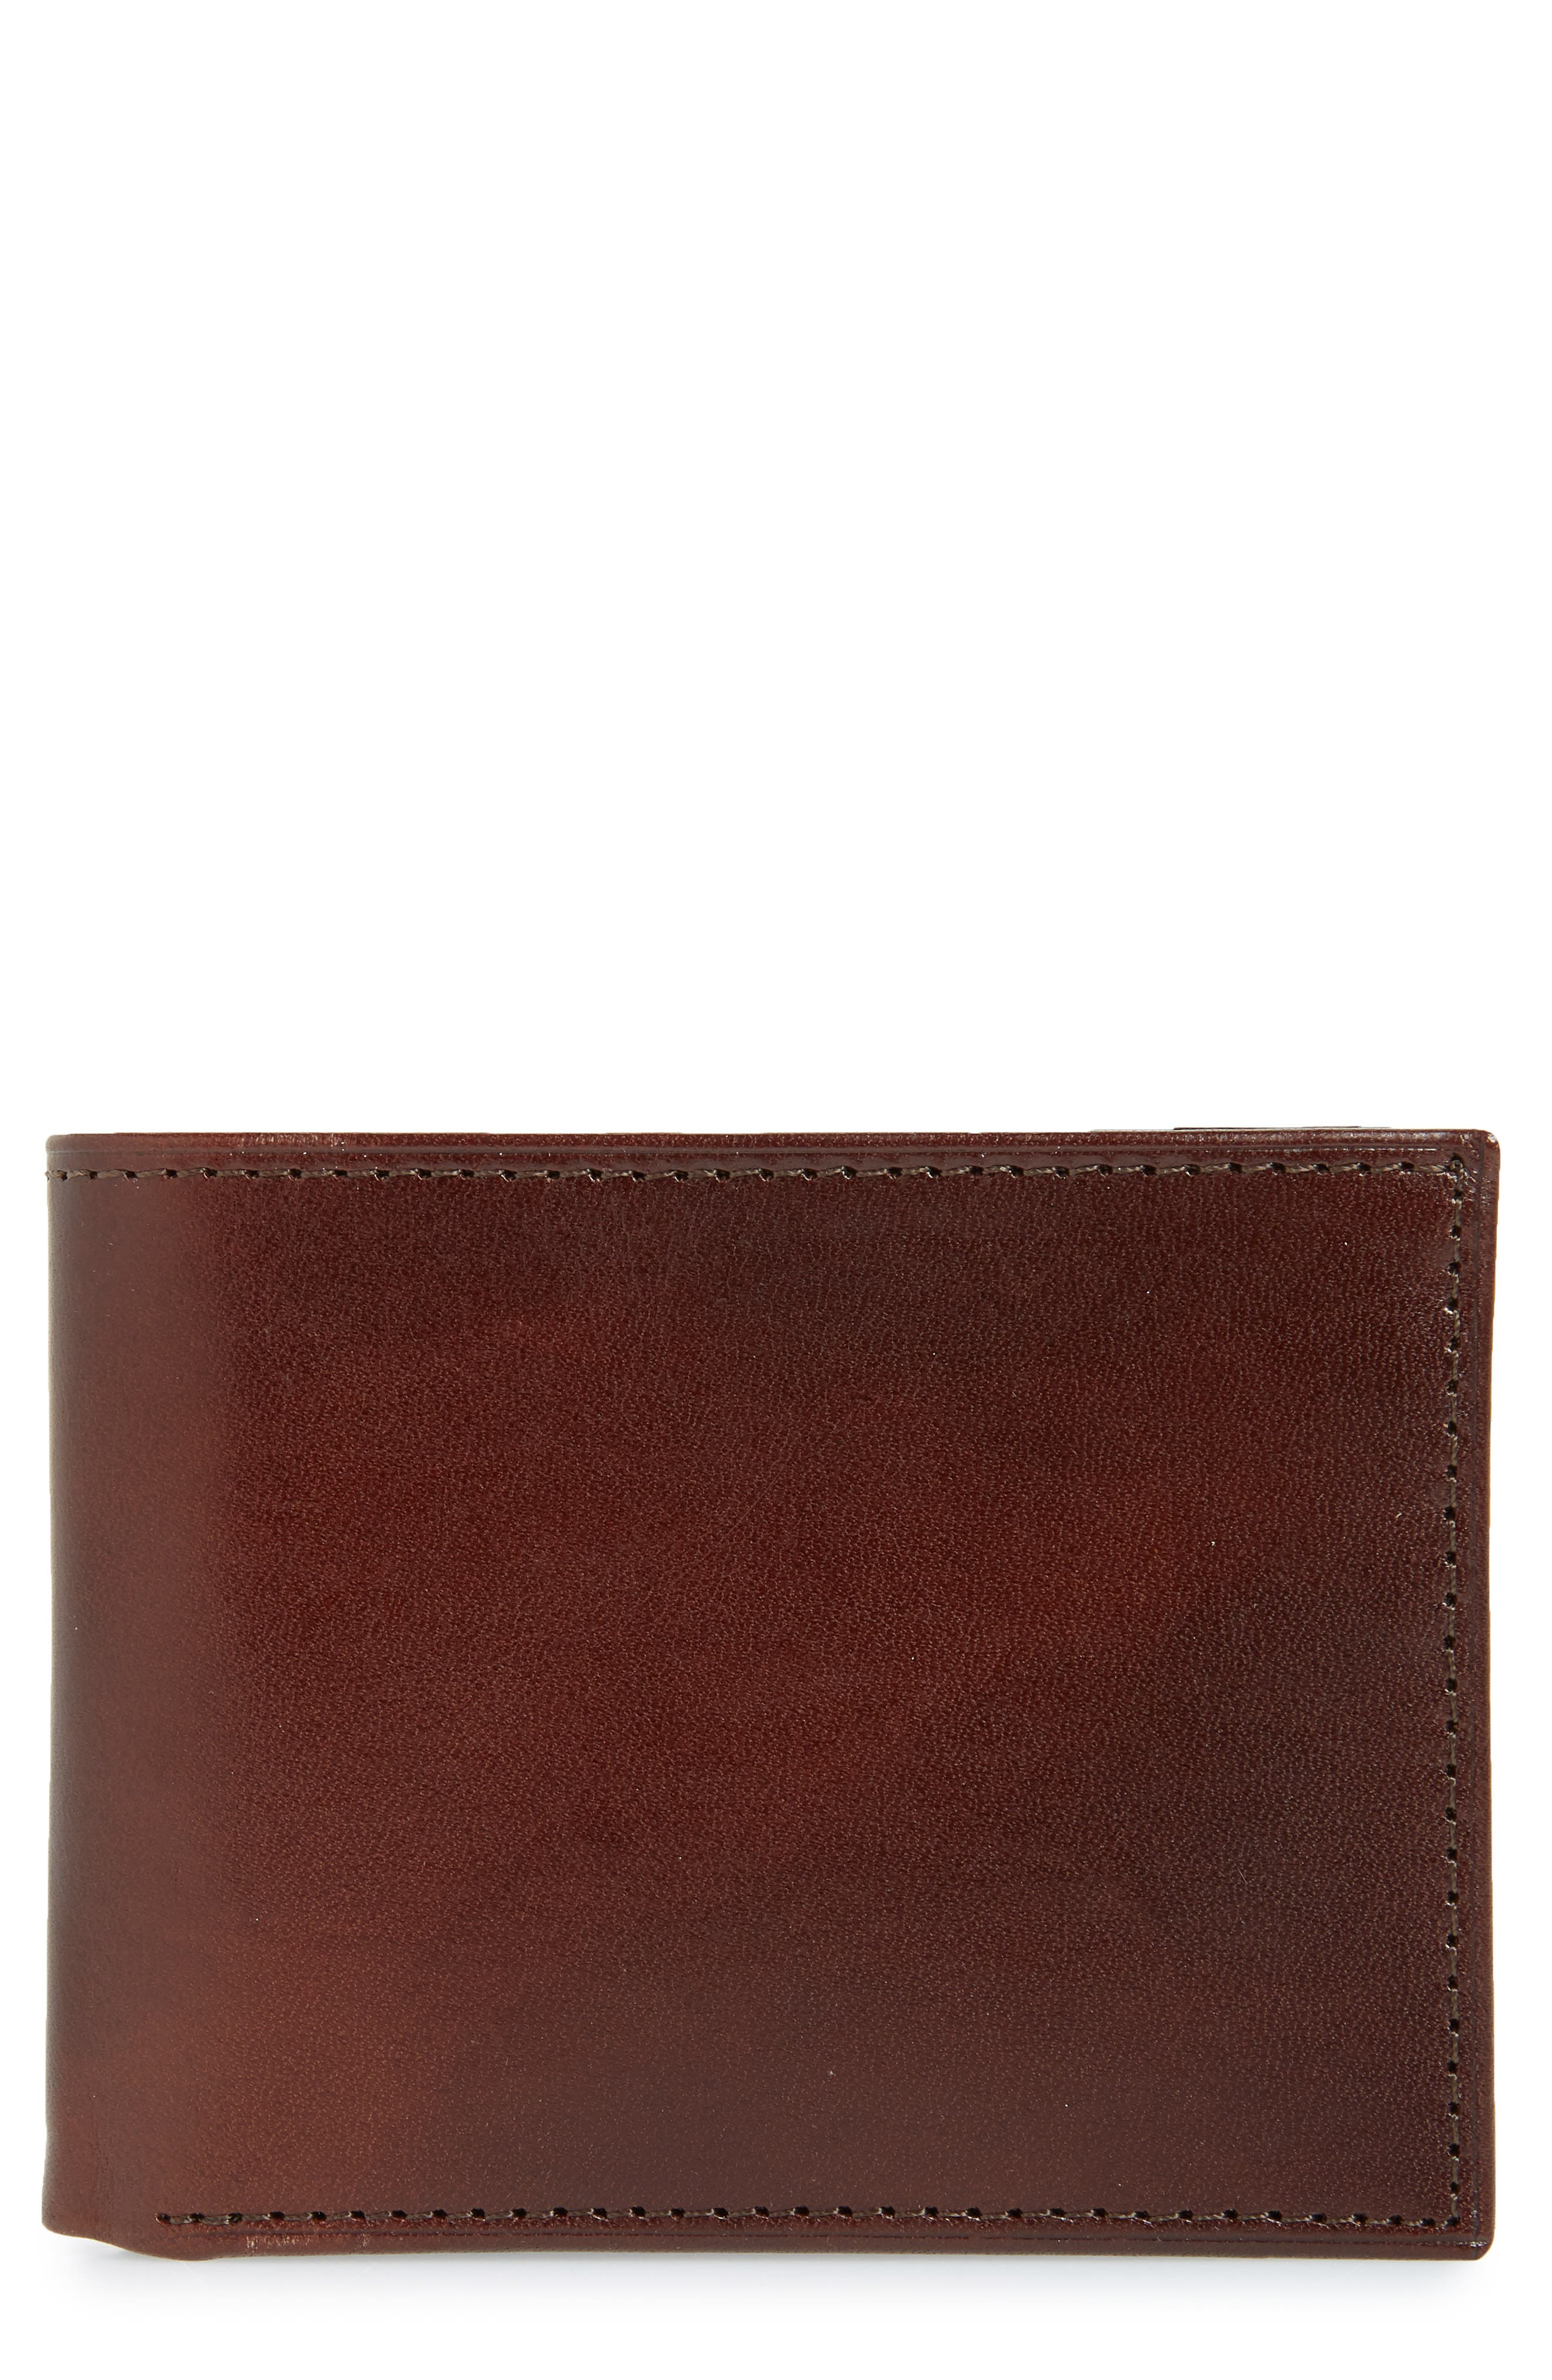 Slimfold Leather Wallet,                         Main,                         color, Brown